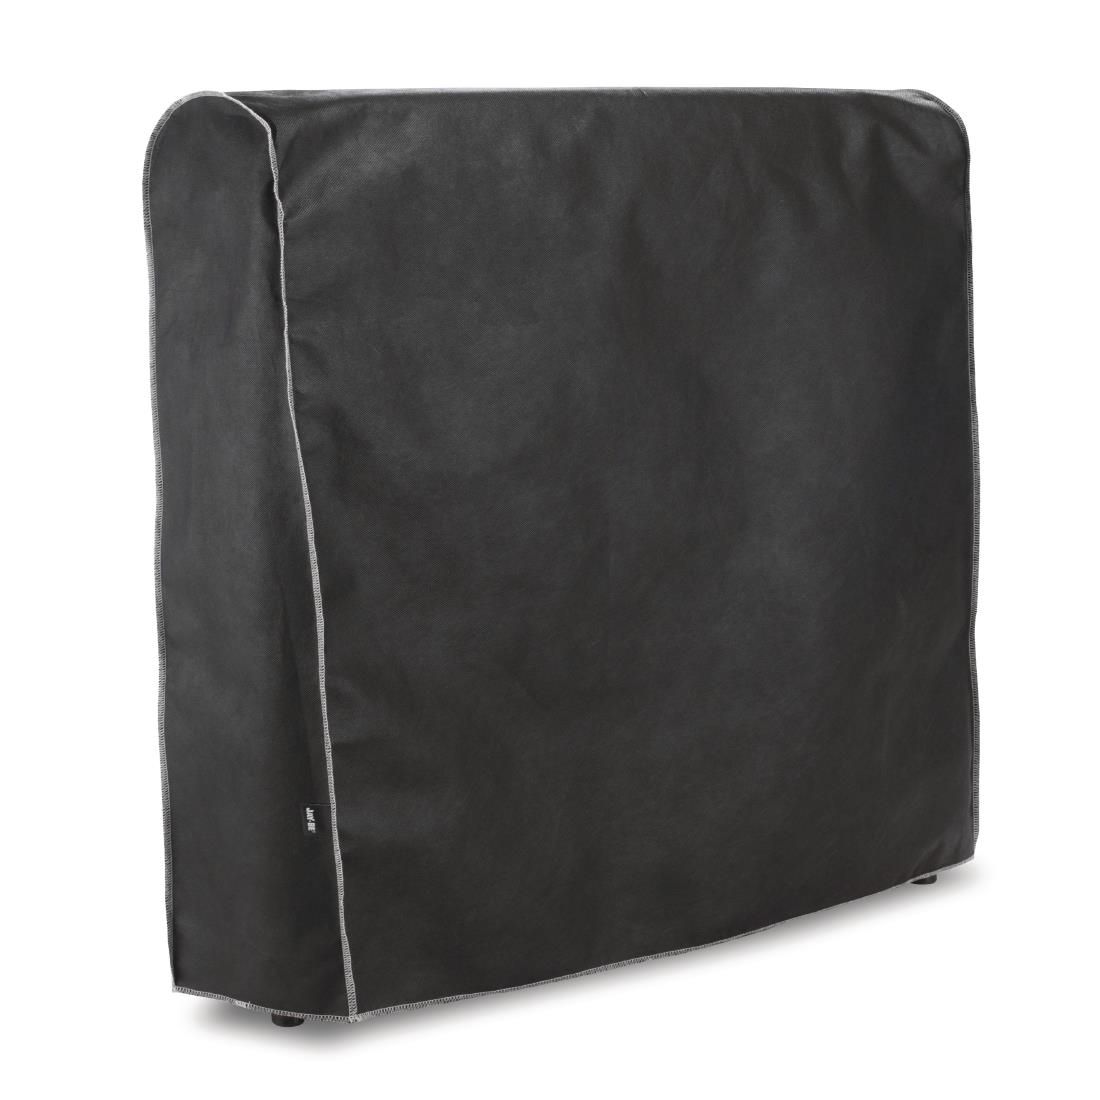 Image of Jay-Be Double Bed Storage Cover for GR371